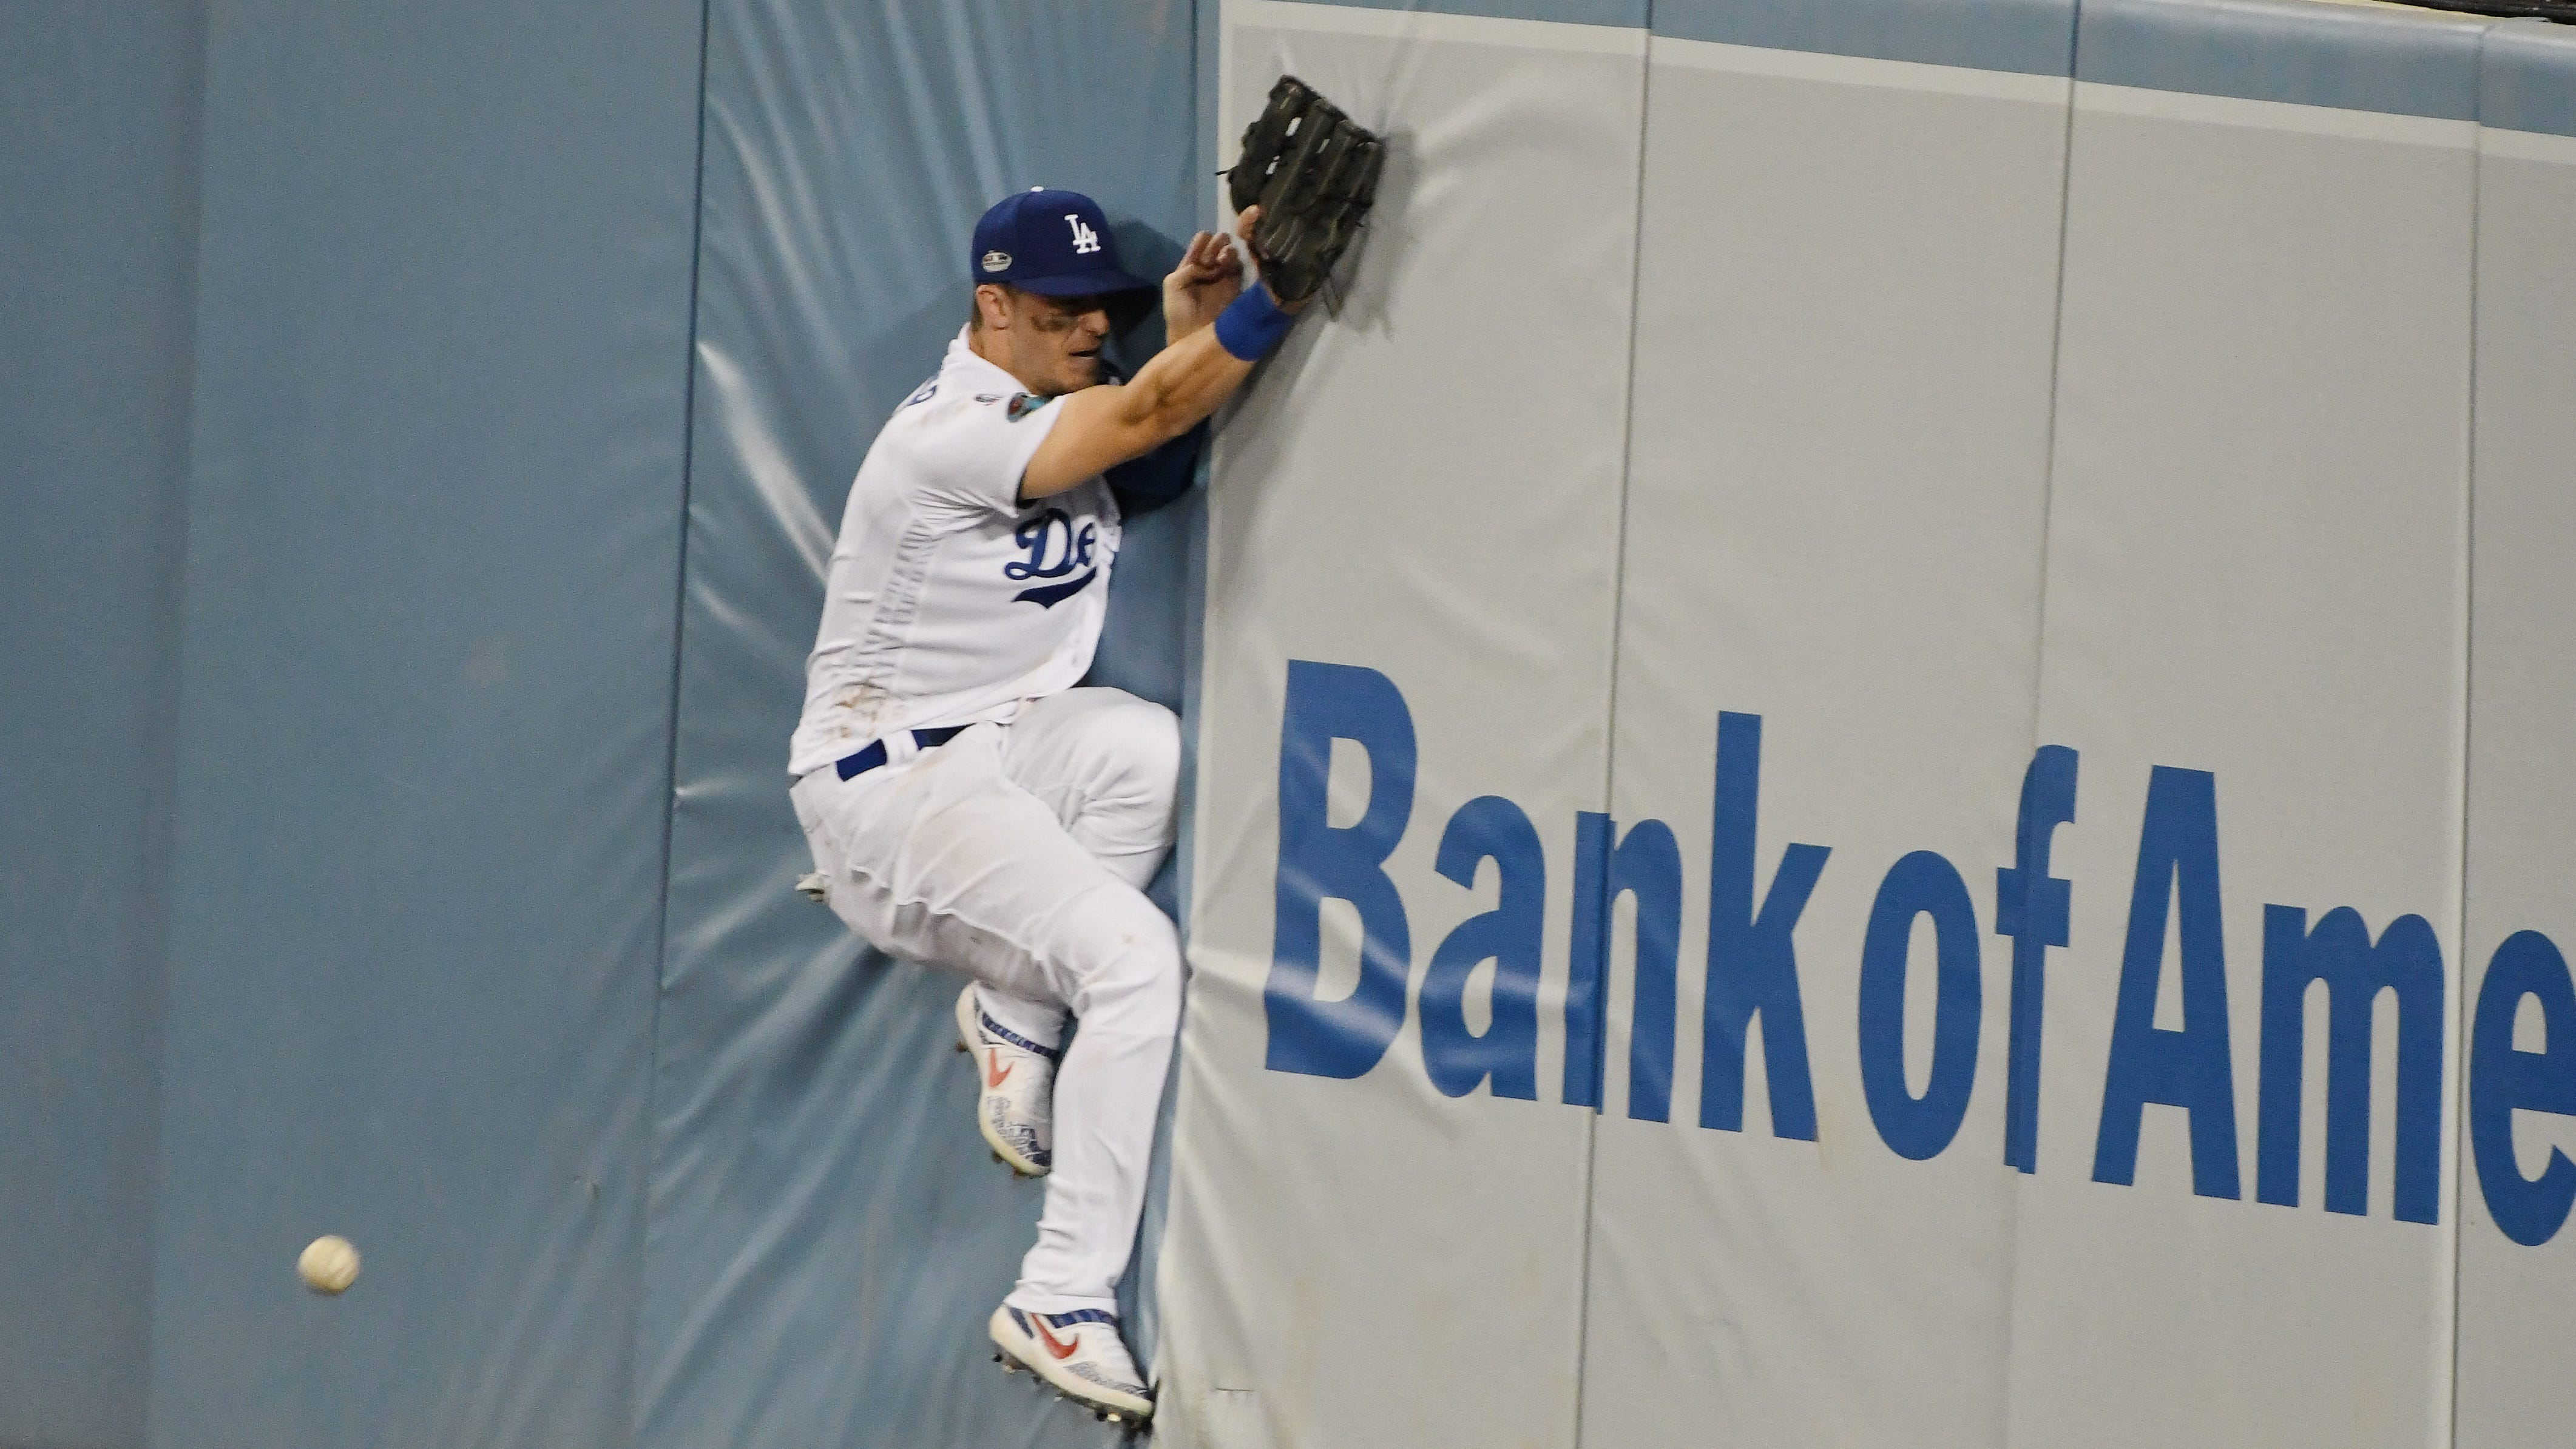 Dodgers center fielder Cody Bellinger fails to make a catch against the Milwaukee Brewers in Game 3 of the 2018 NLCS series at Dodger Stadium.